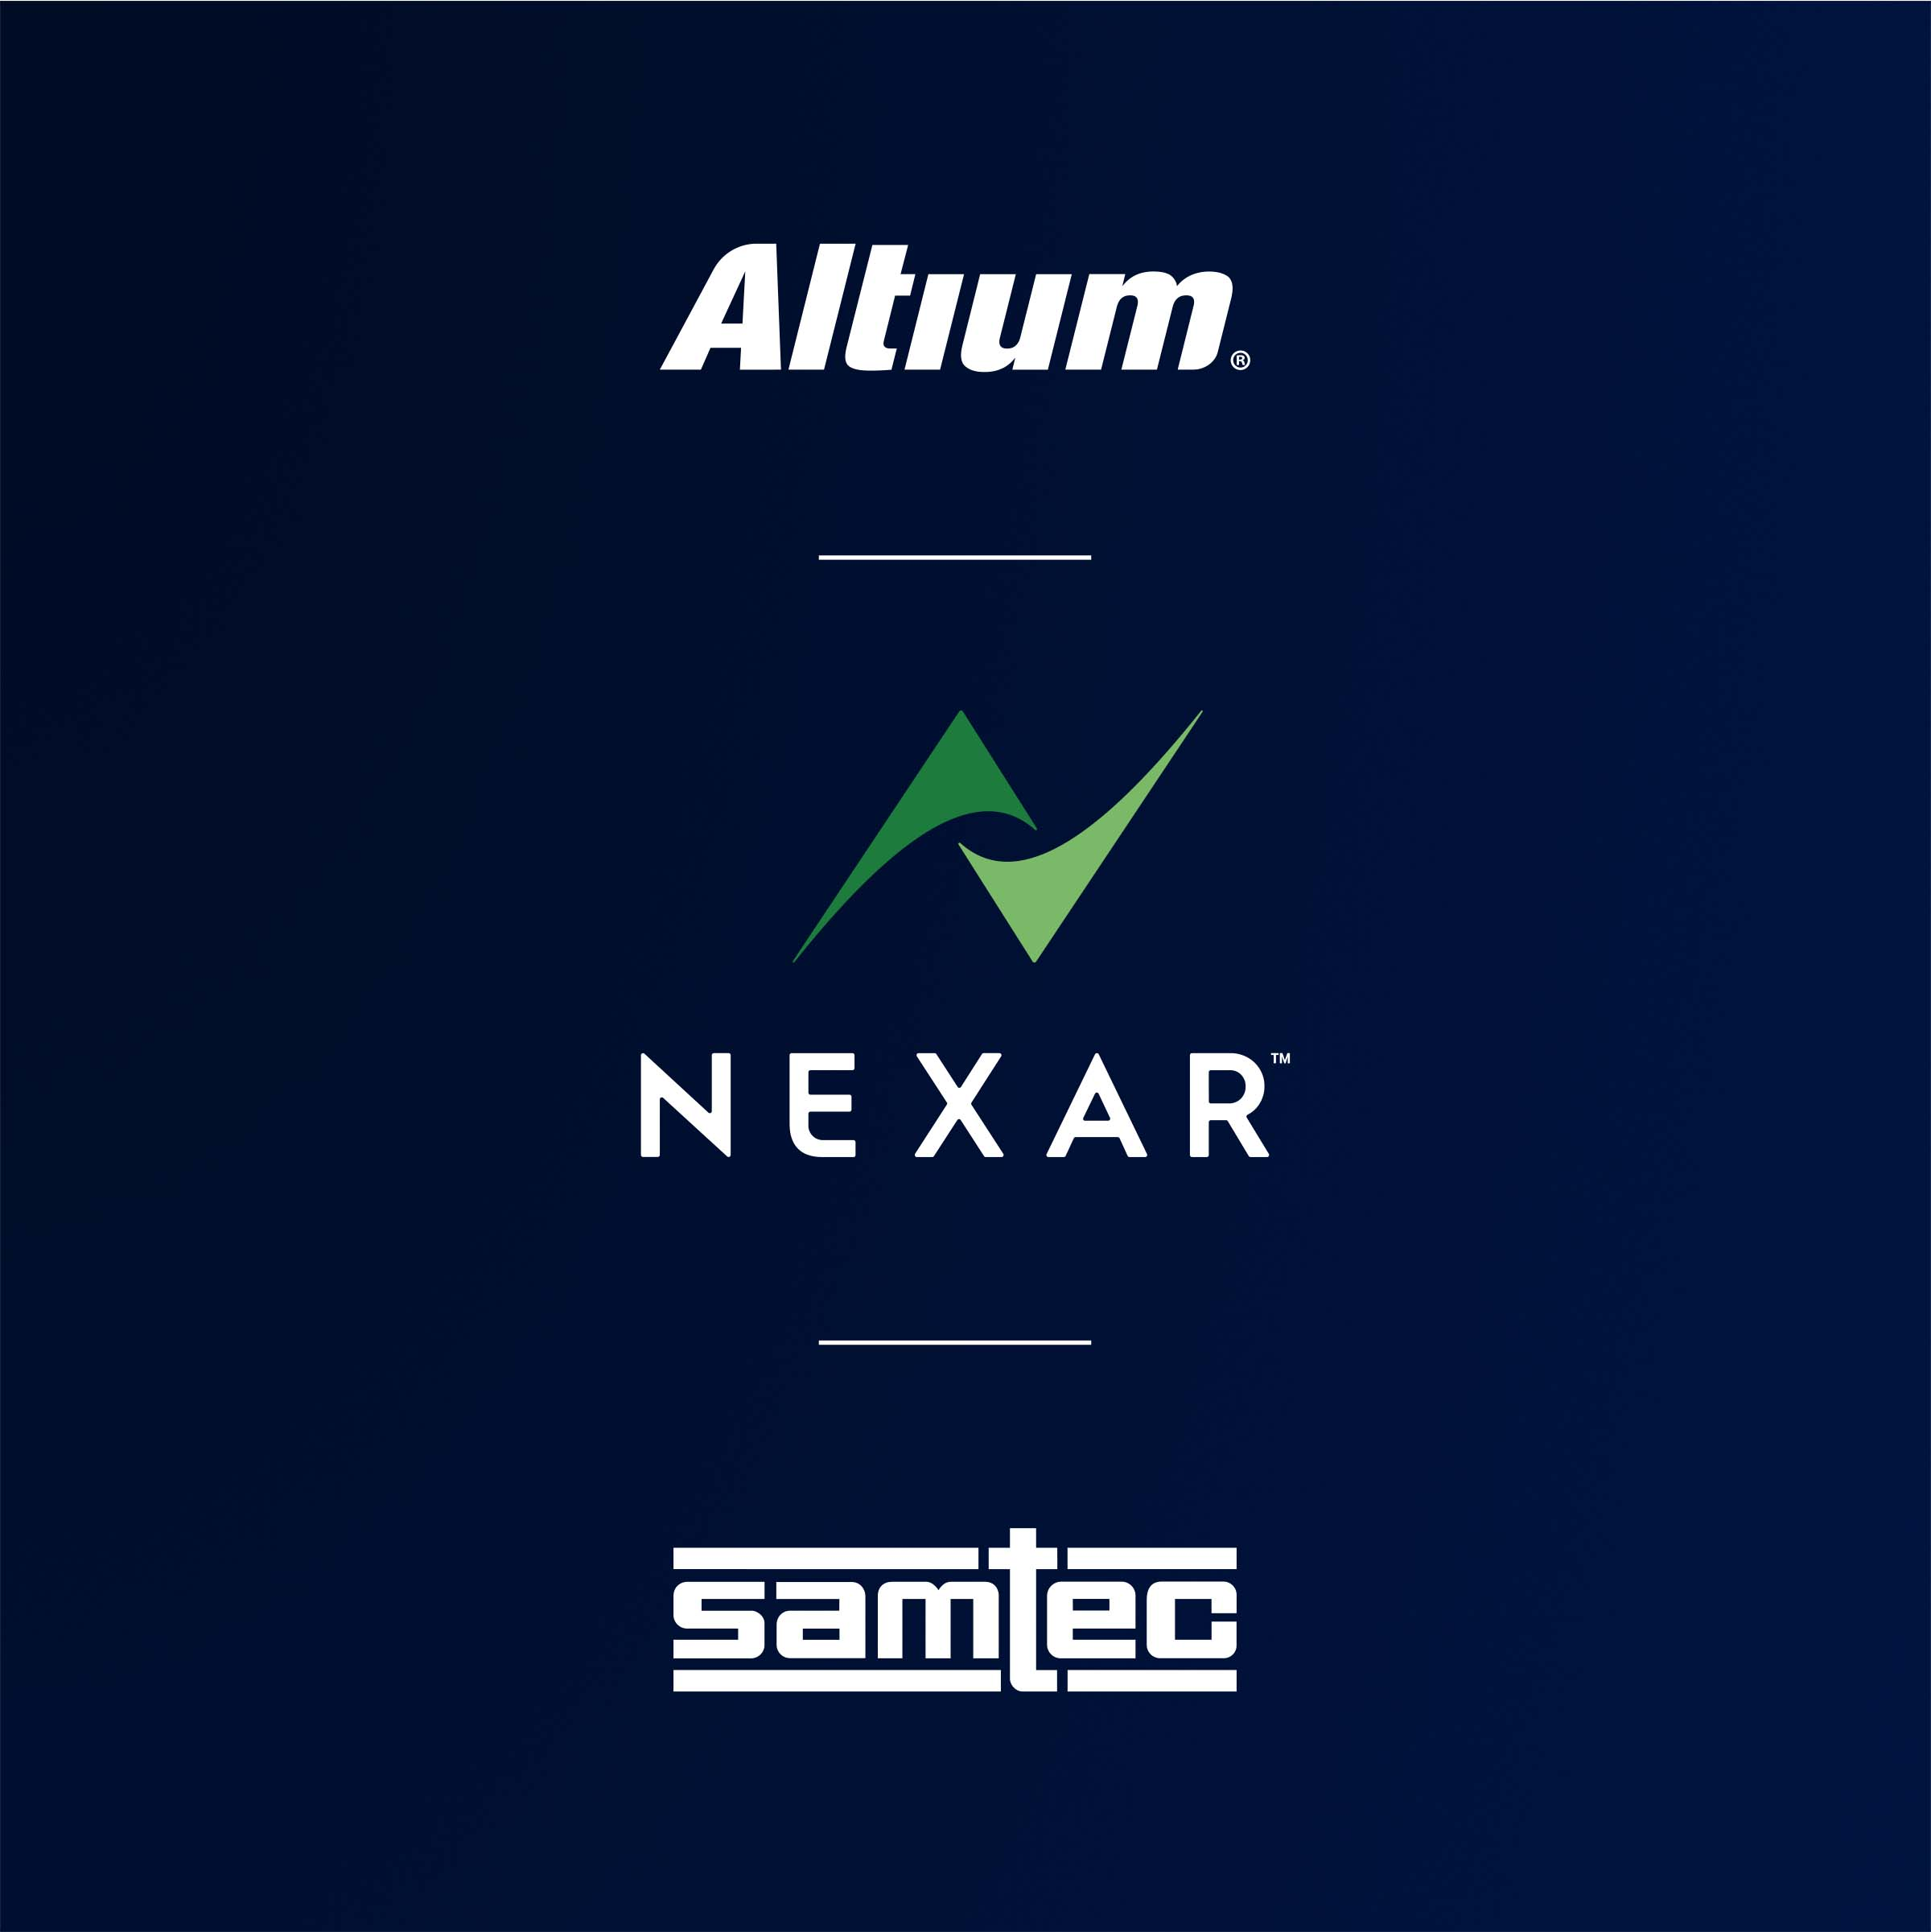 Samtec, a leading component manufacturer, joins Altium's Nexar ecosystem of electronic industry partners